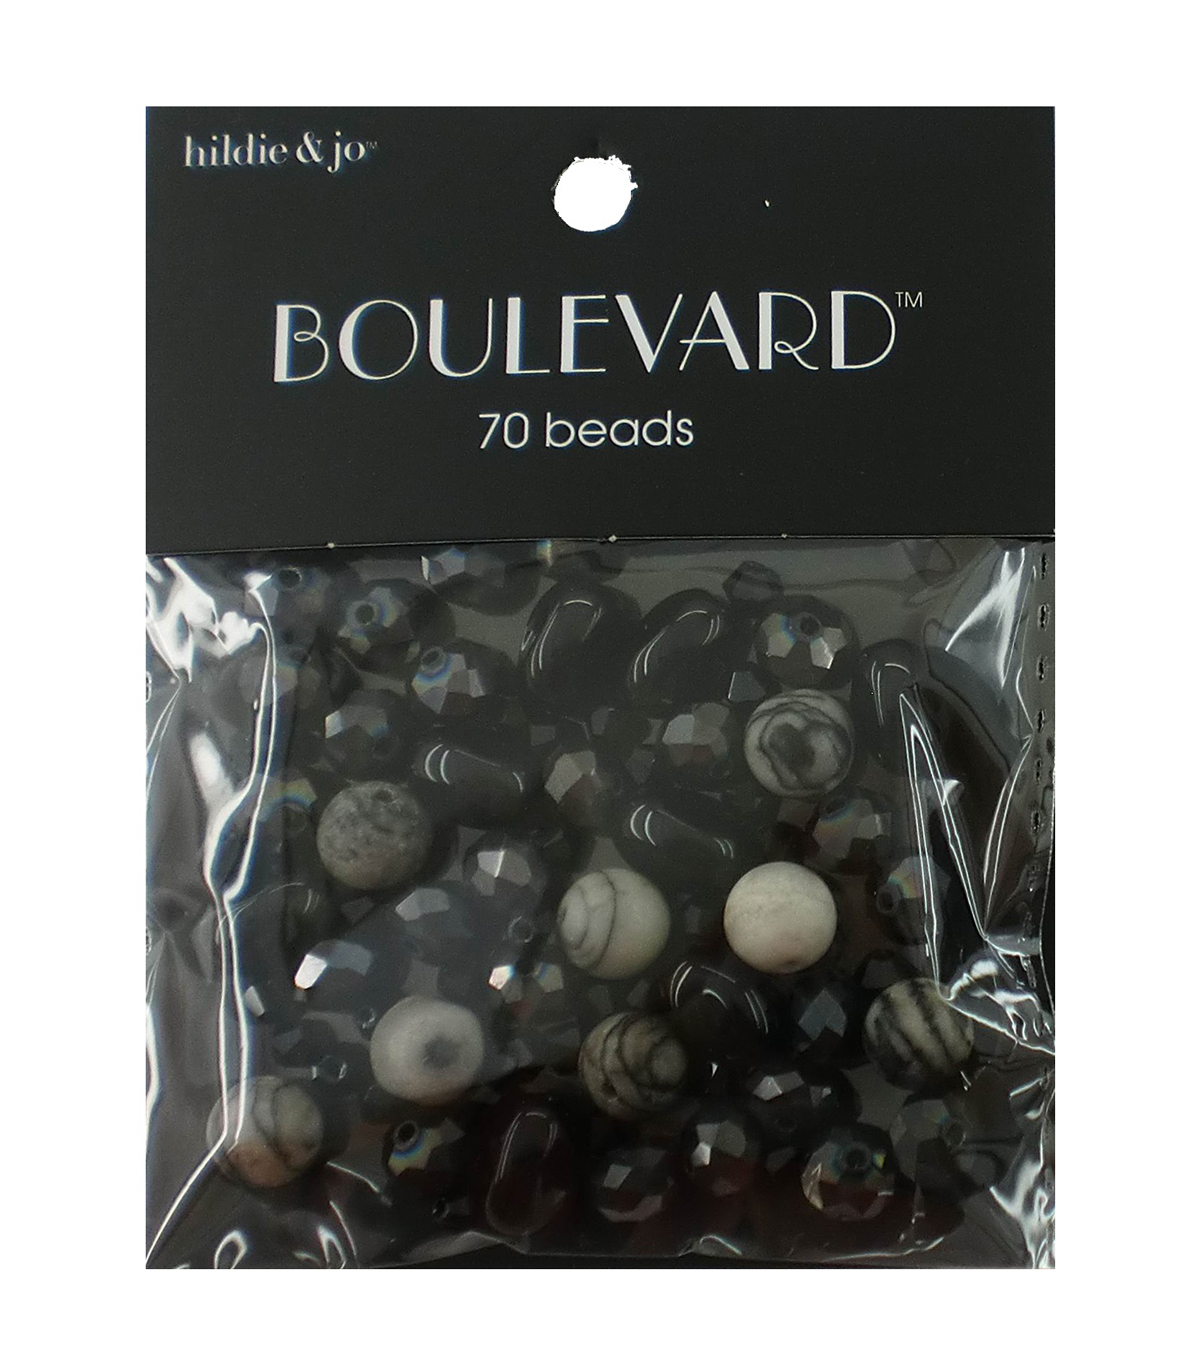 hildie & jo Boulevard 70 pk Mixed Glass Beads-Black & White